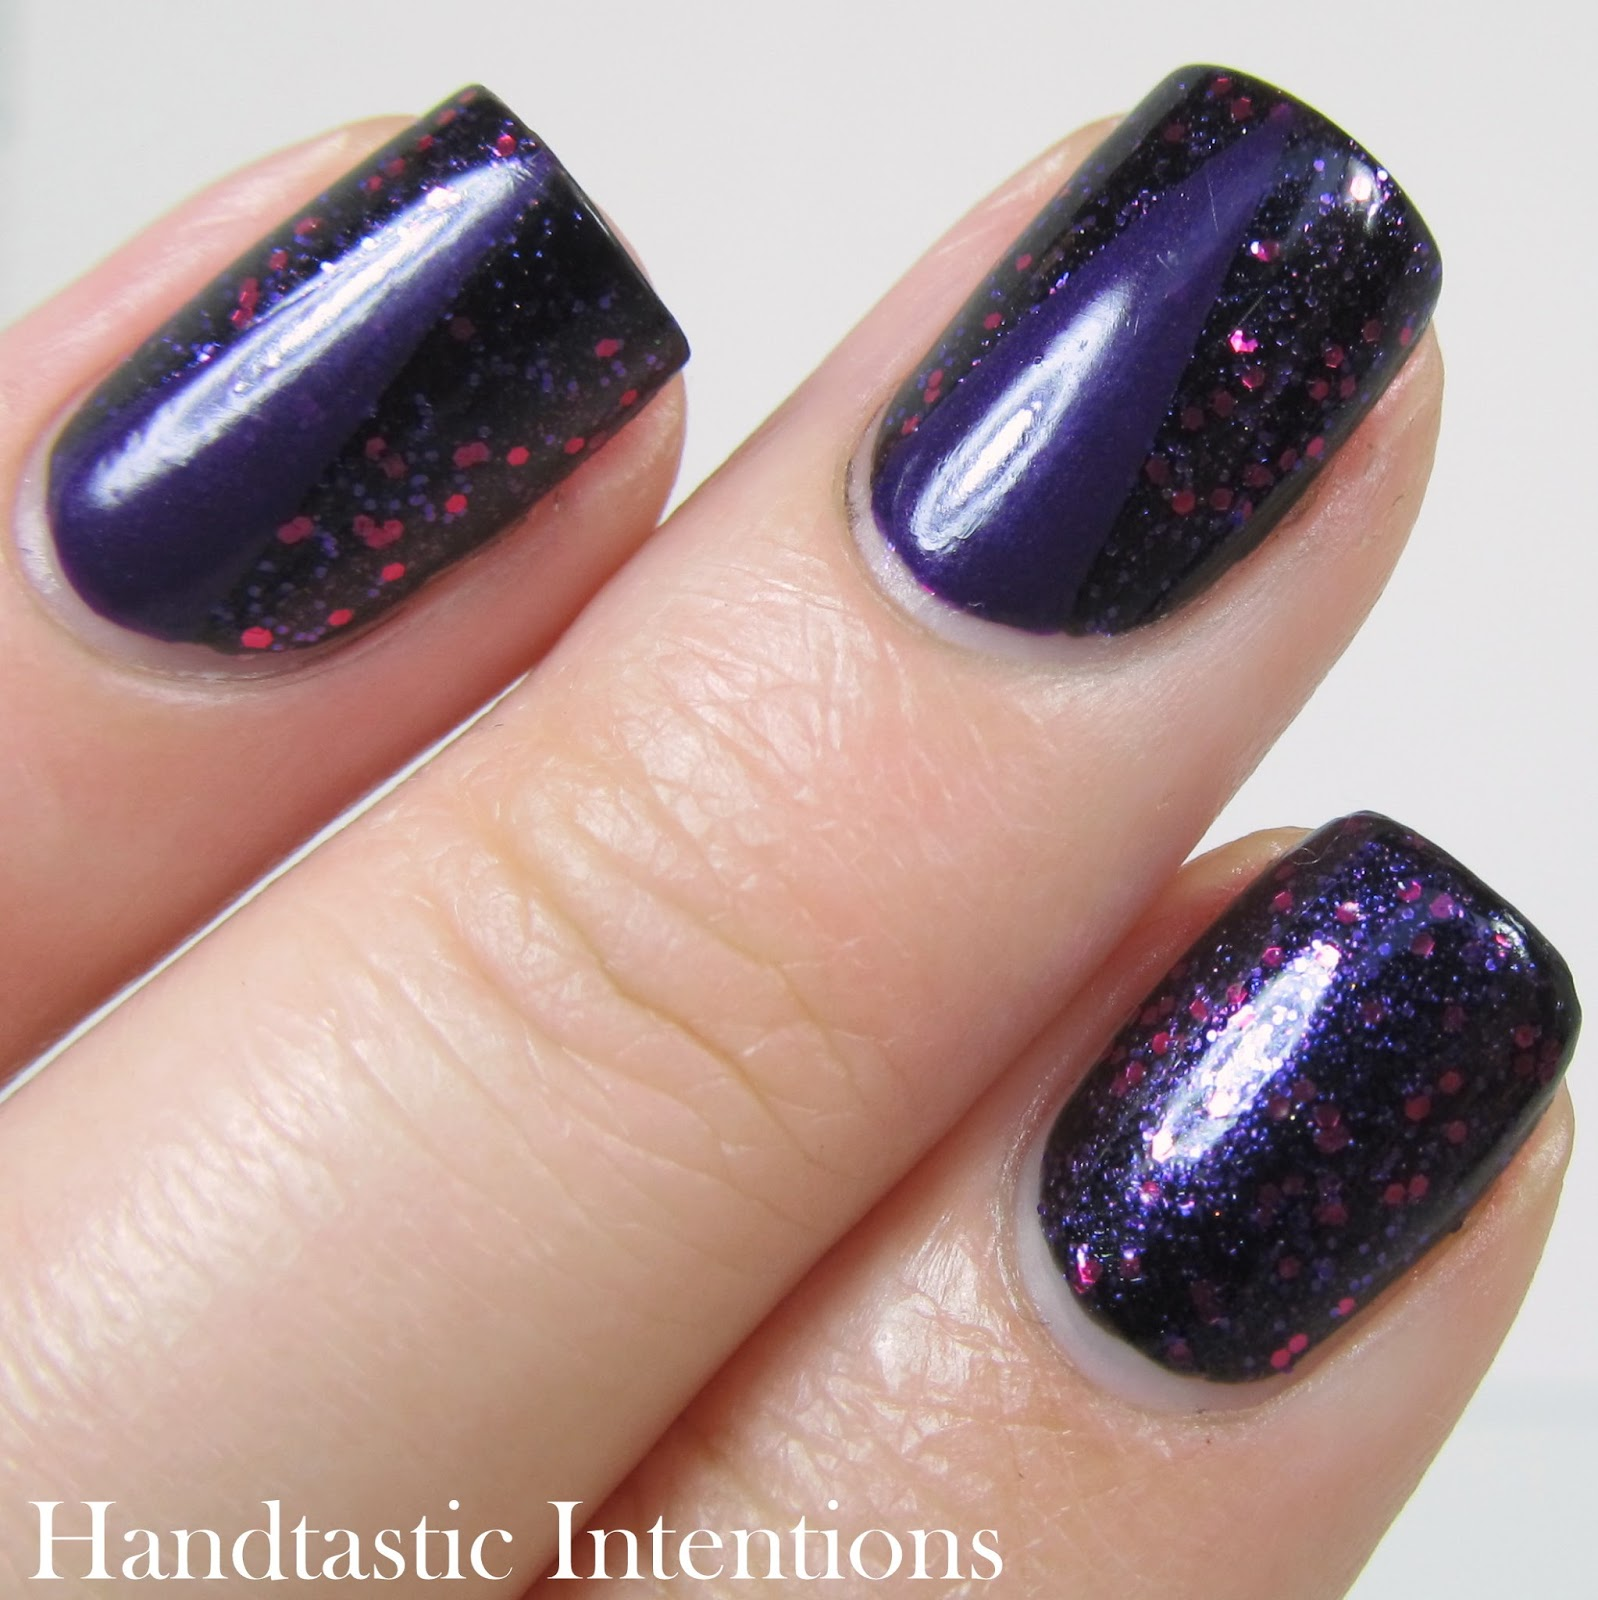 Handtastic Intentions: Dark Purple Nail Art